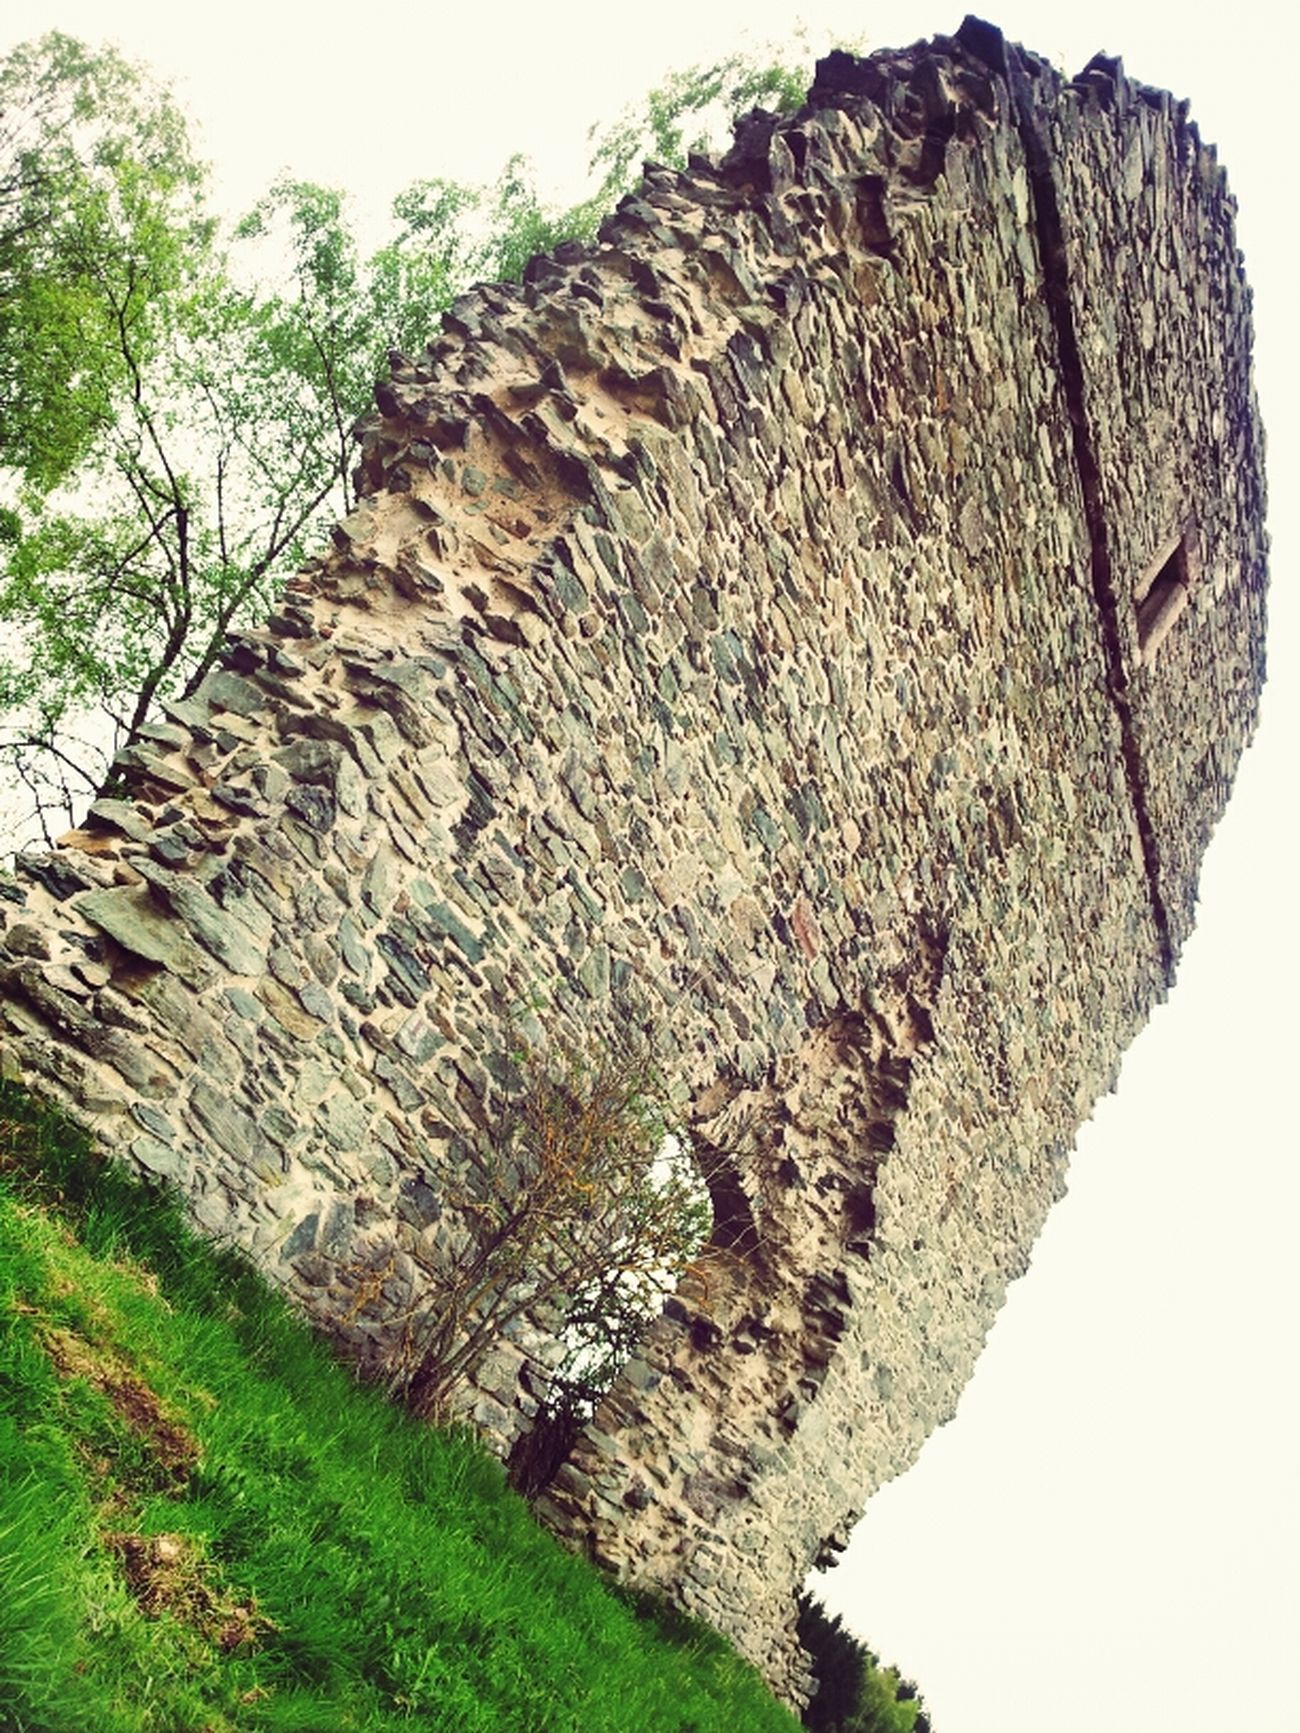 Church Stone Ruine Check This Out